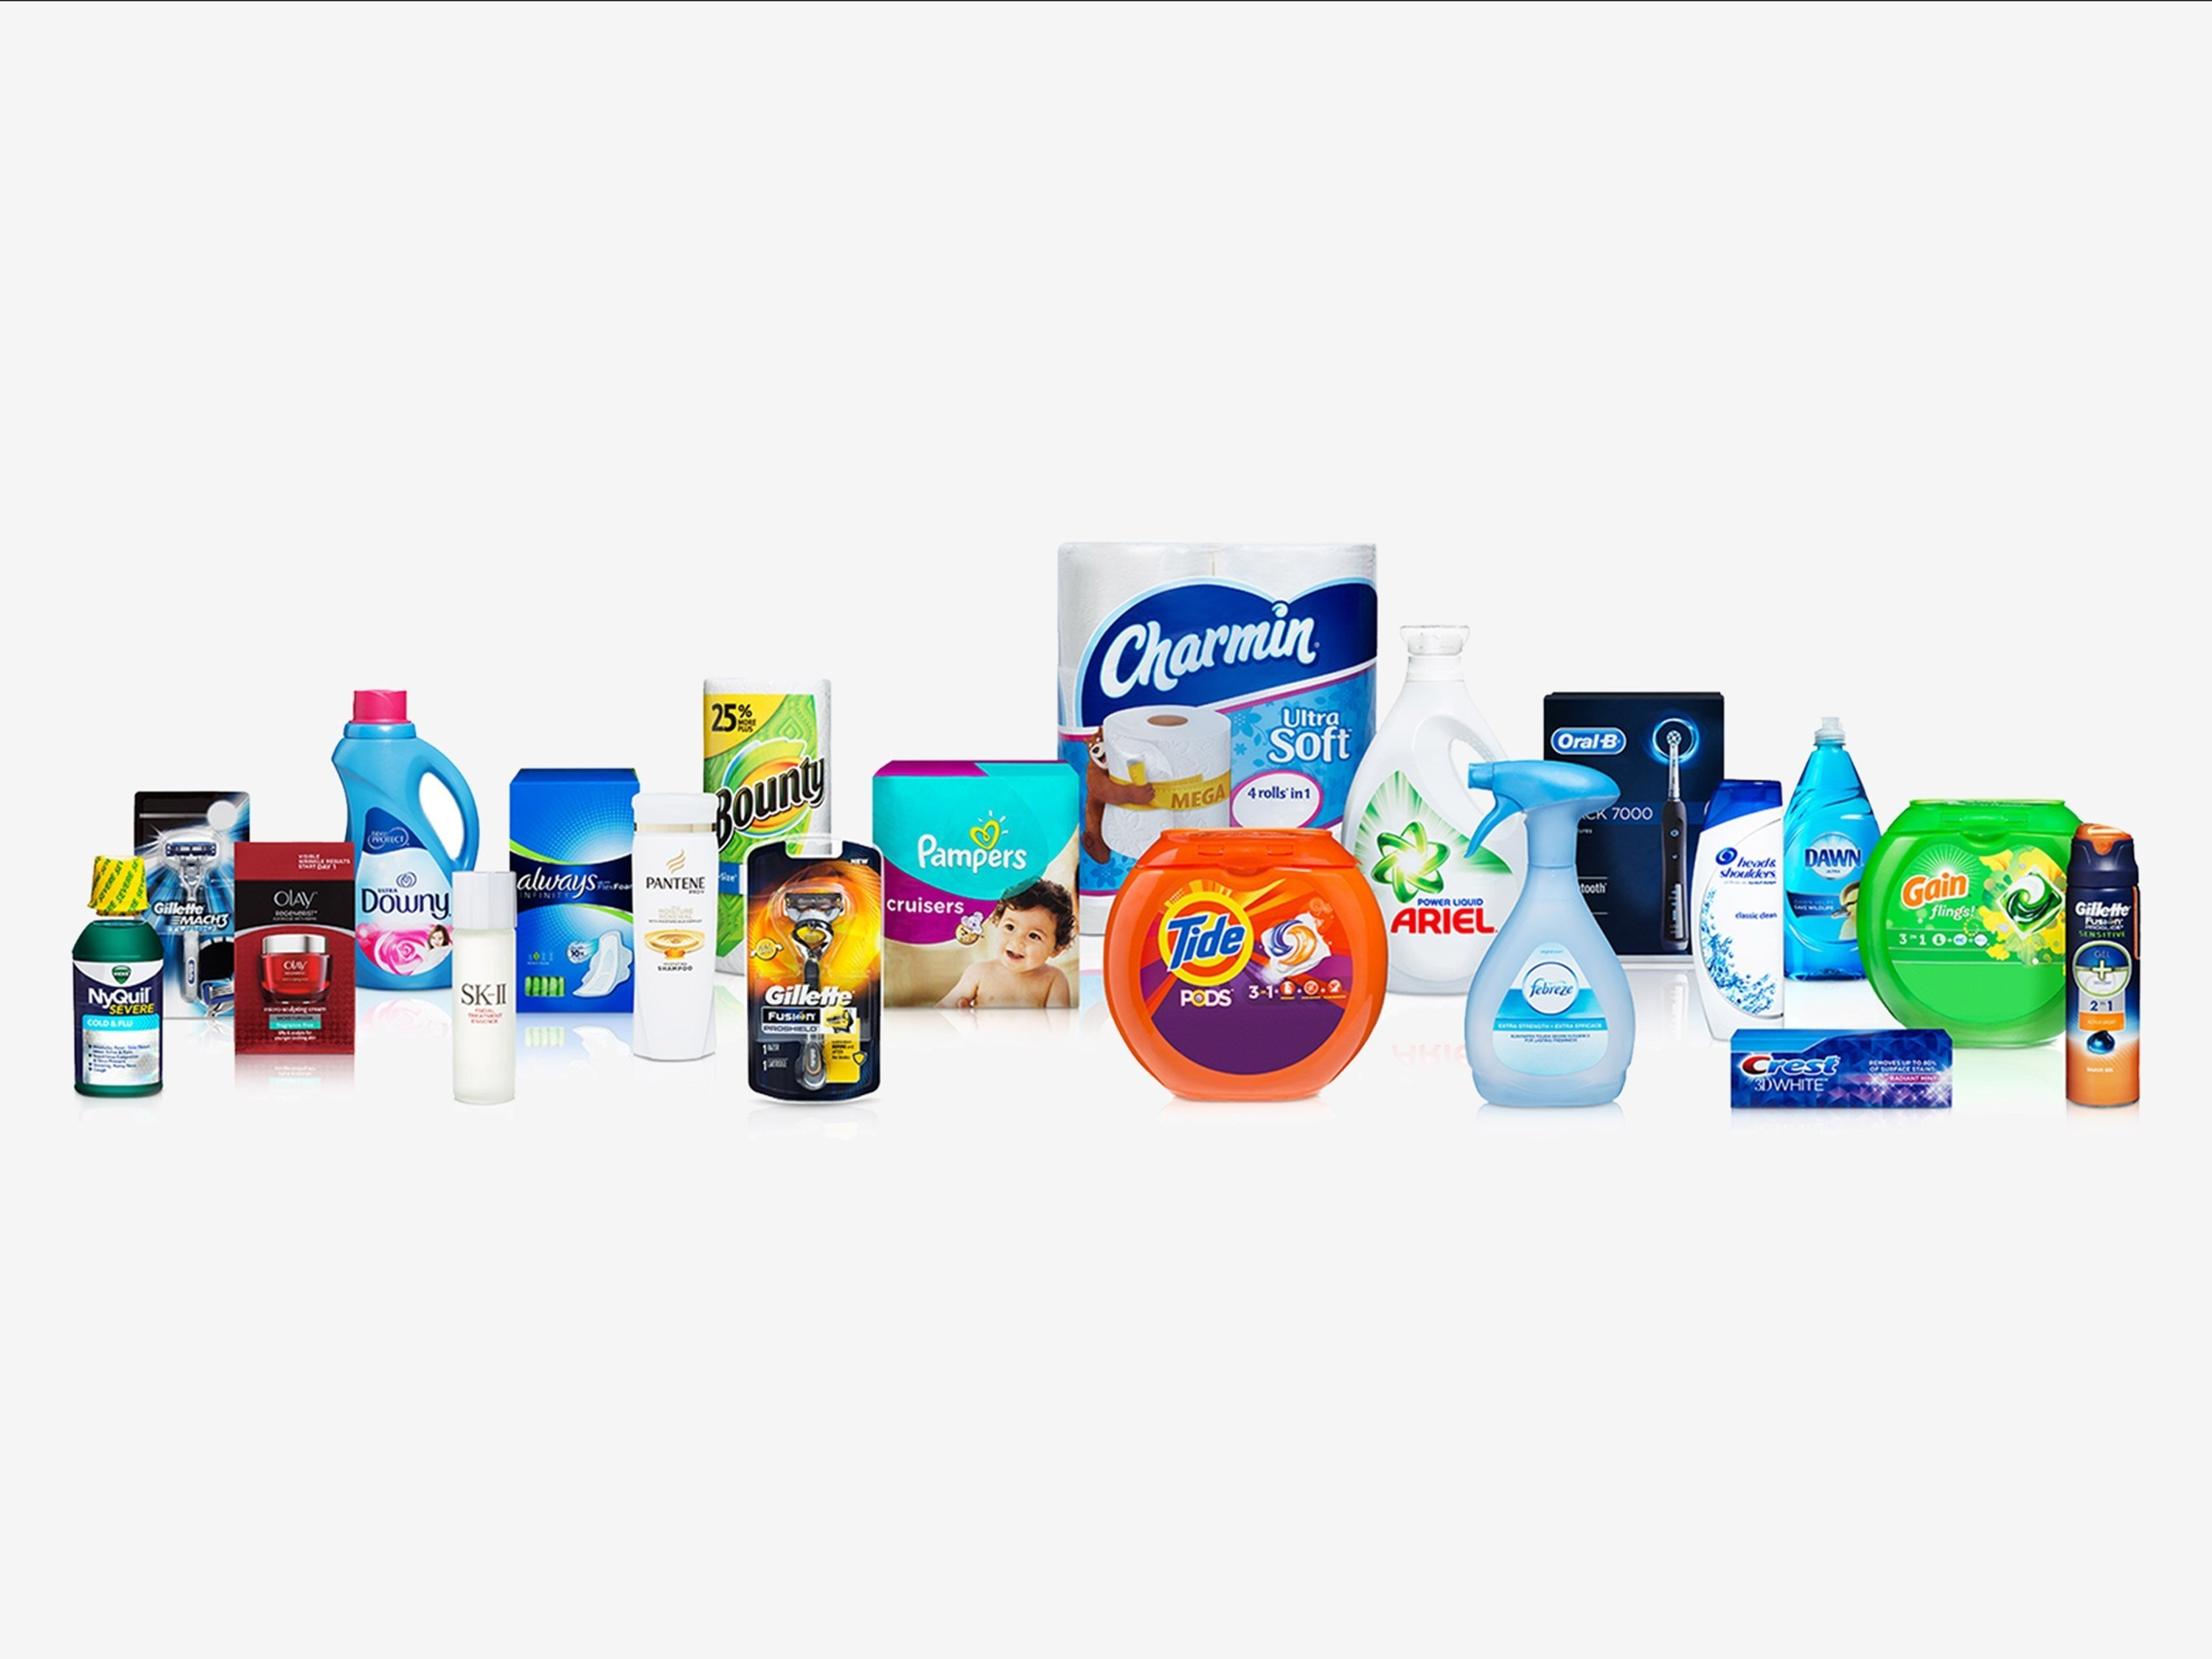 P&G To Acquire German Merck's Consumer Health Unit For $ 4.2 Billion